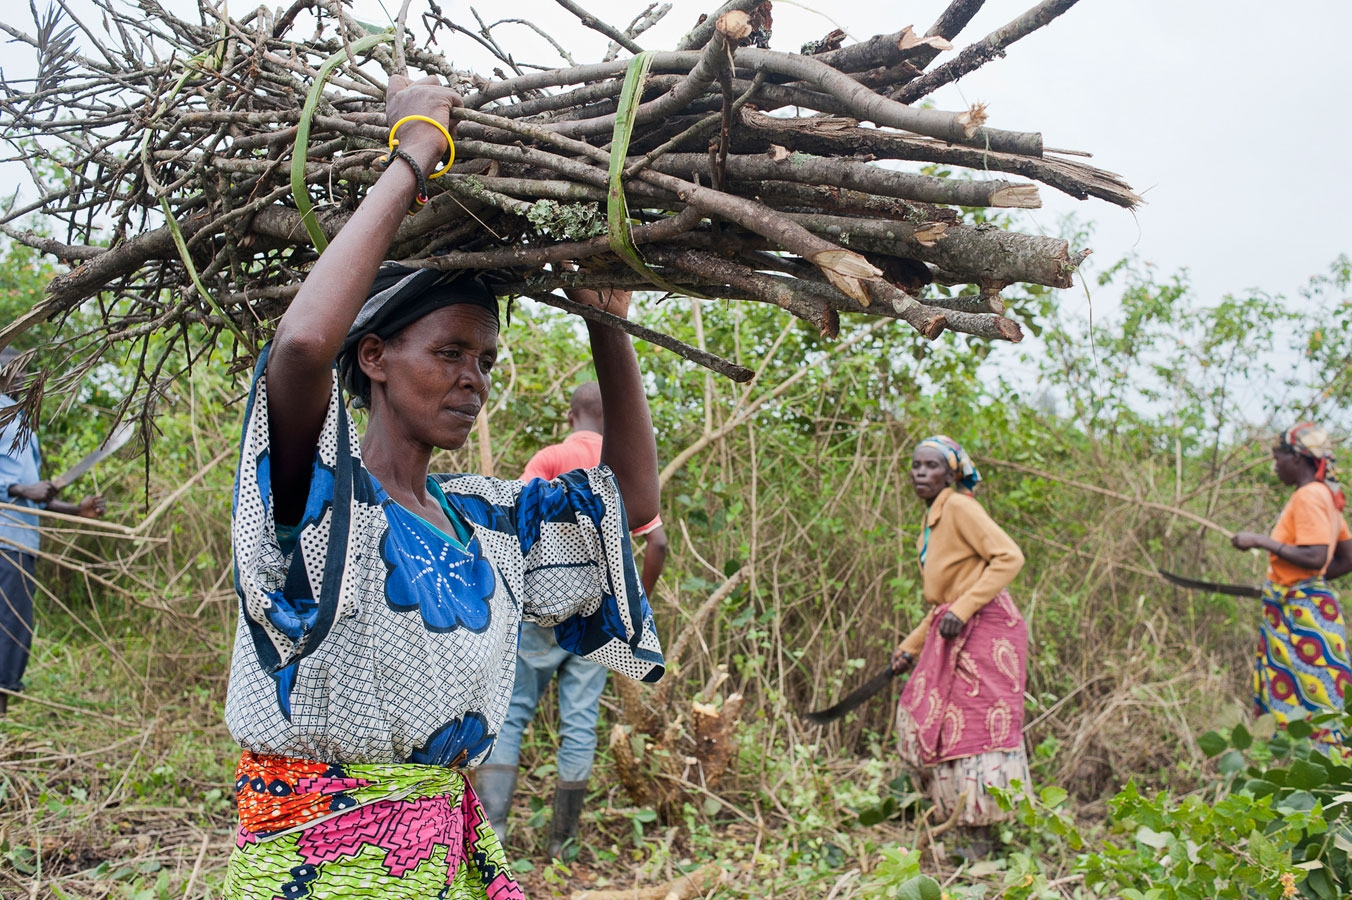 <p>Villagers clearing scrubland to prepare it for  cultivating crops as part of an IFRC sponsored Food Security program in Rwanda</p>